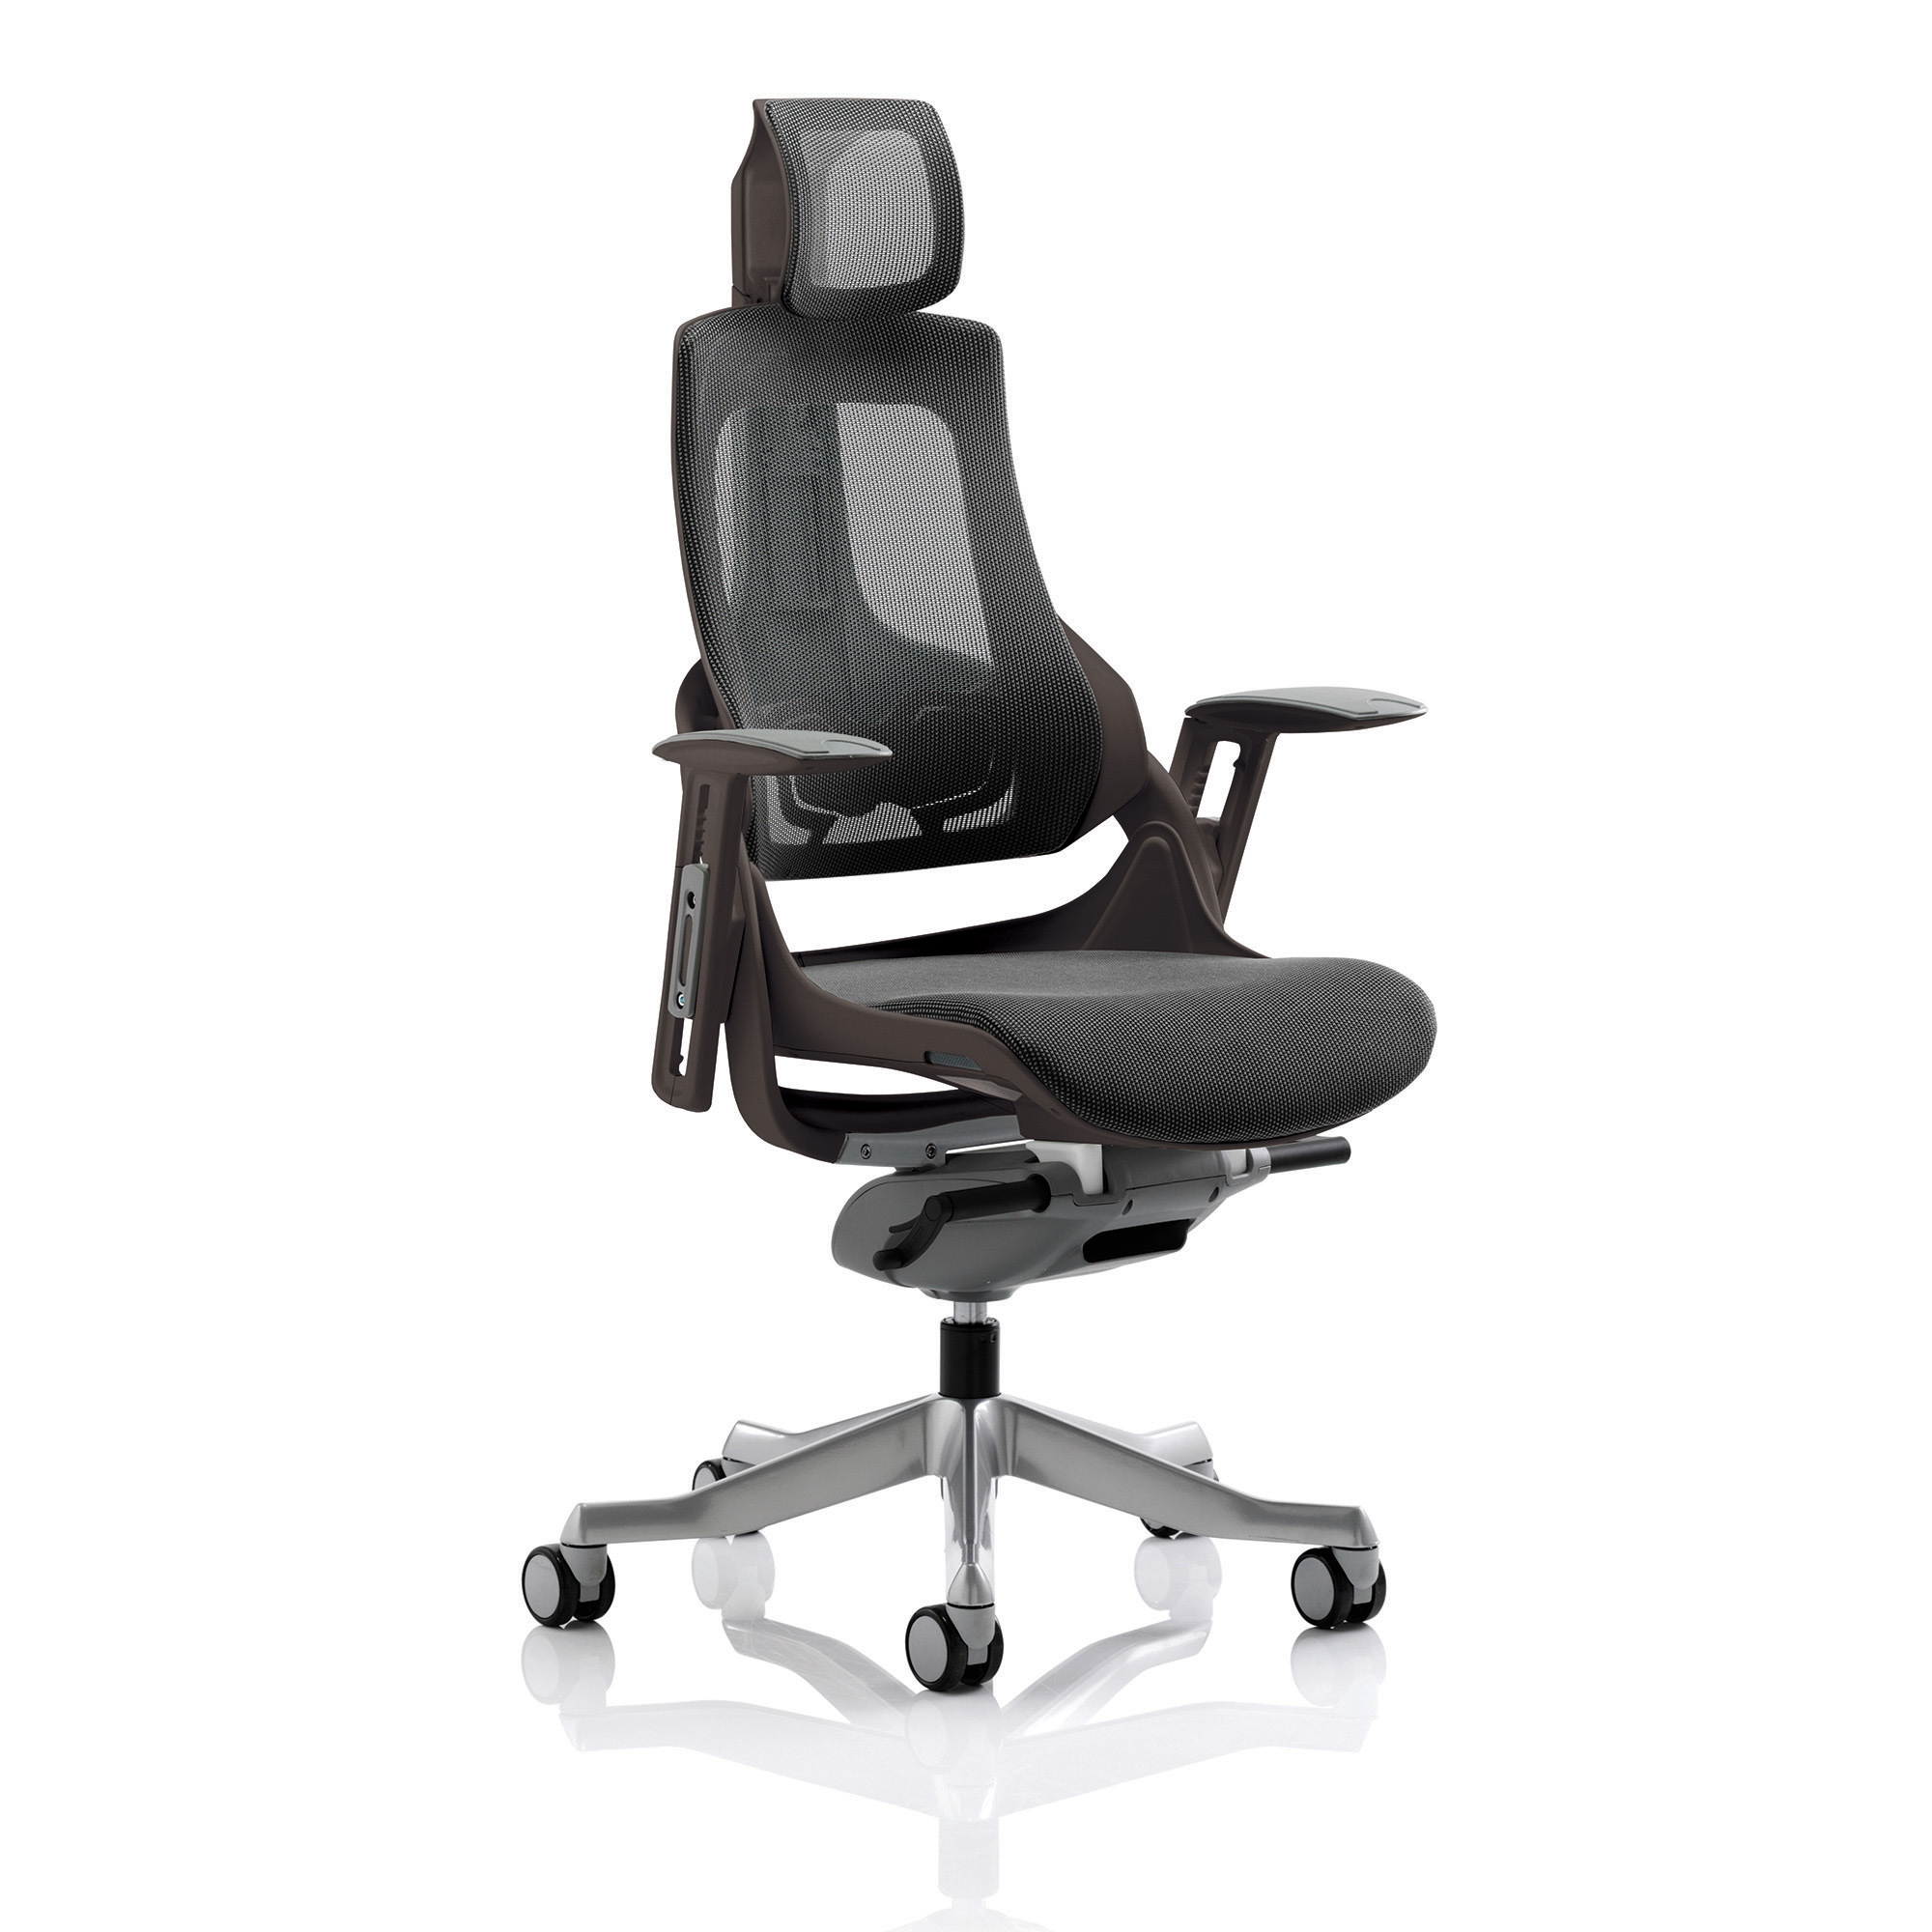 Adroit Zure Executive Chair With Headrest Black Frame Mesh Charcoal Ref KCUP1281